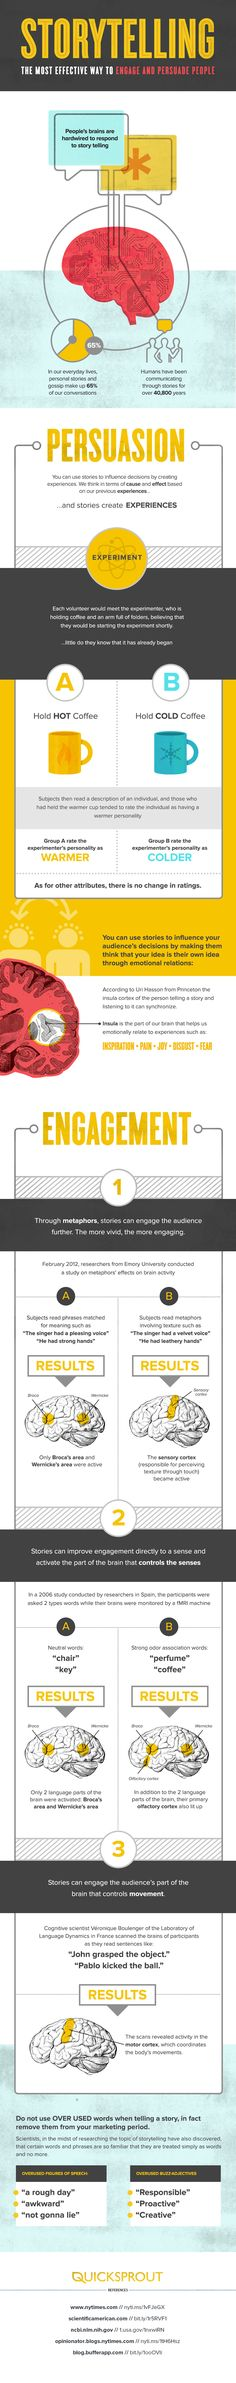 http://dingox.com Storytelling The Most Effective Way to Engage and Persuade People #infographic                                                                                                                                                      Más